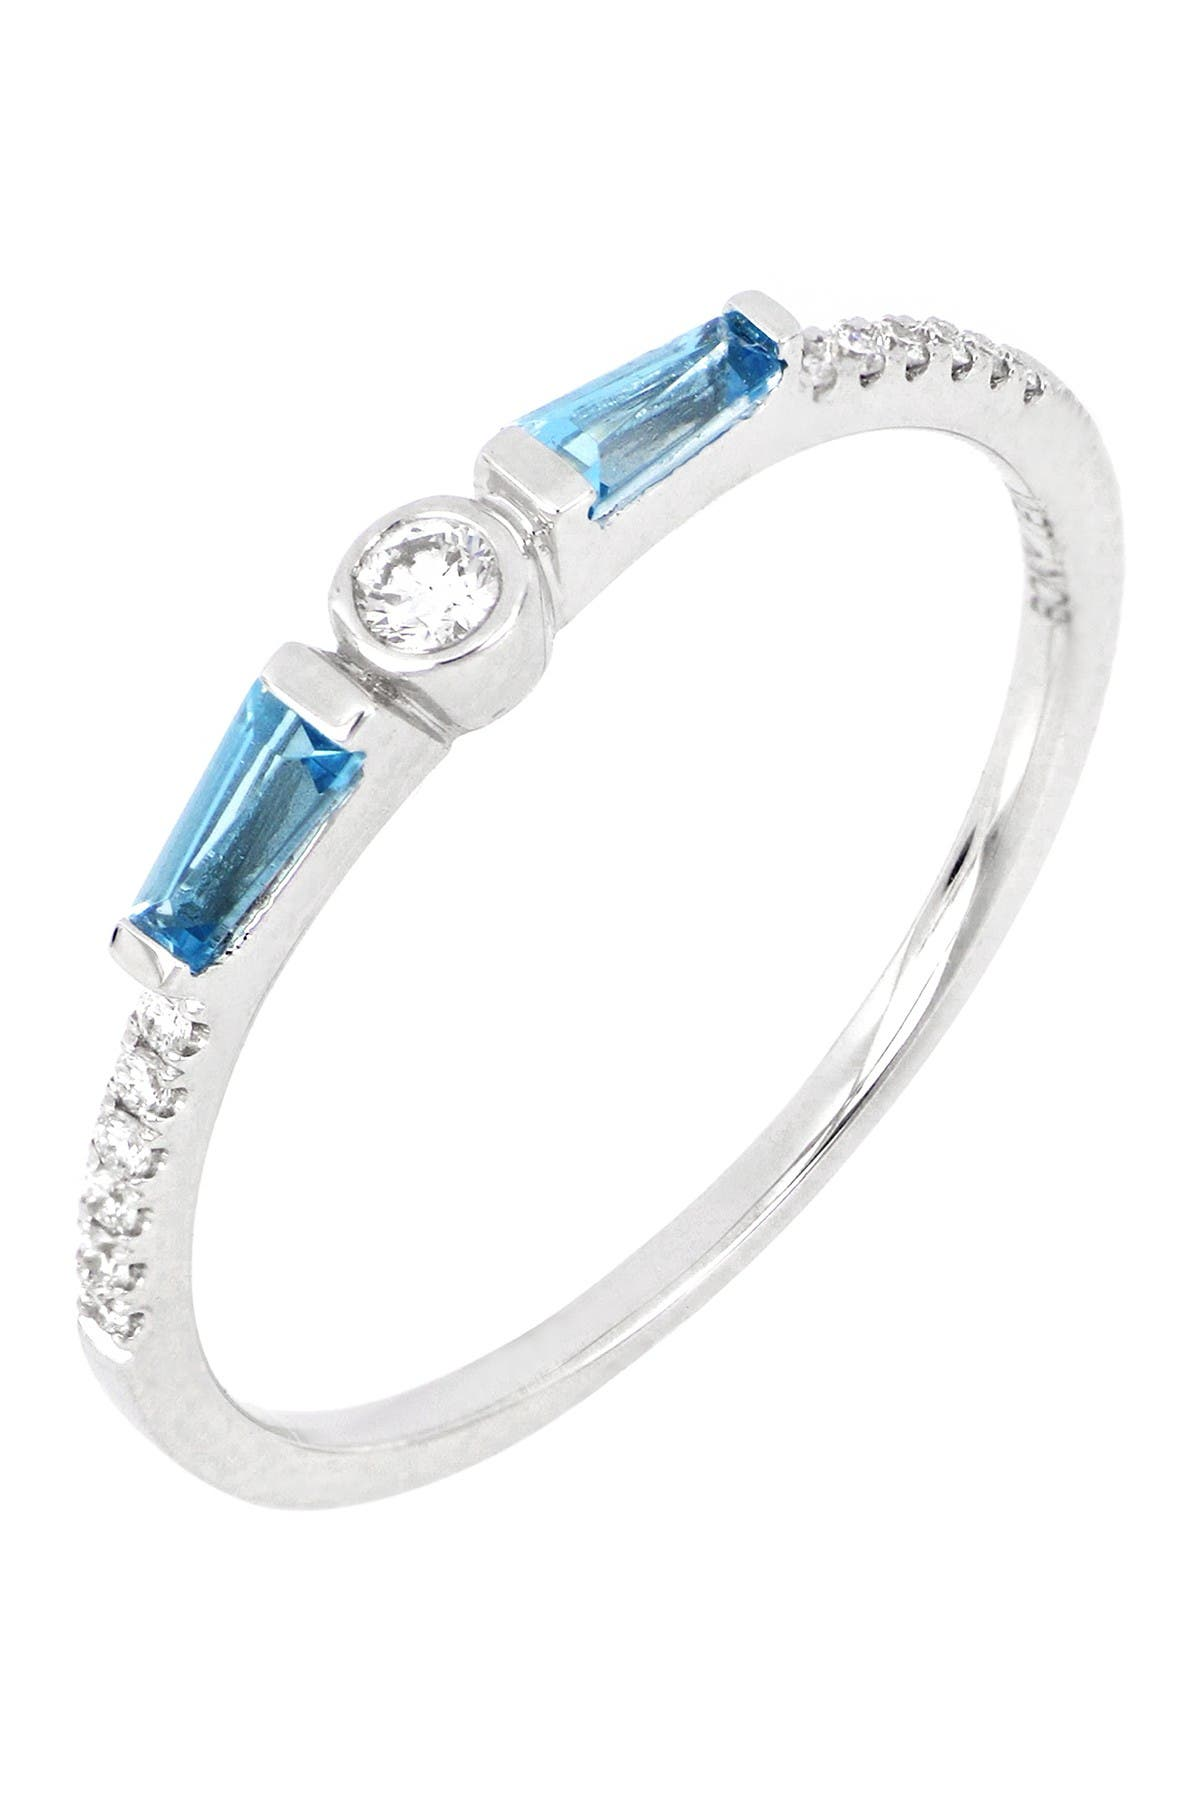 Image of Bony Levy 18K White Gold Petite Blue Topaz & Diamond Ring